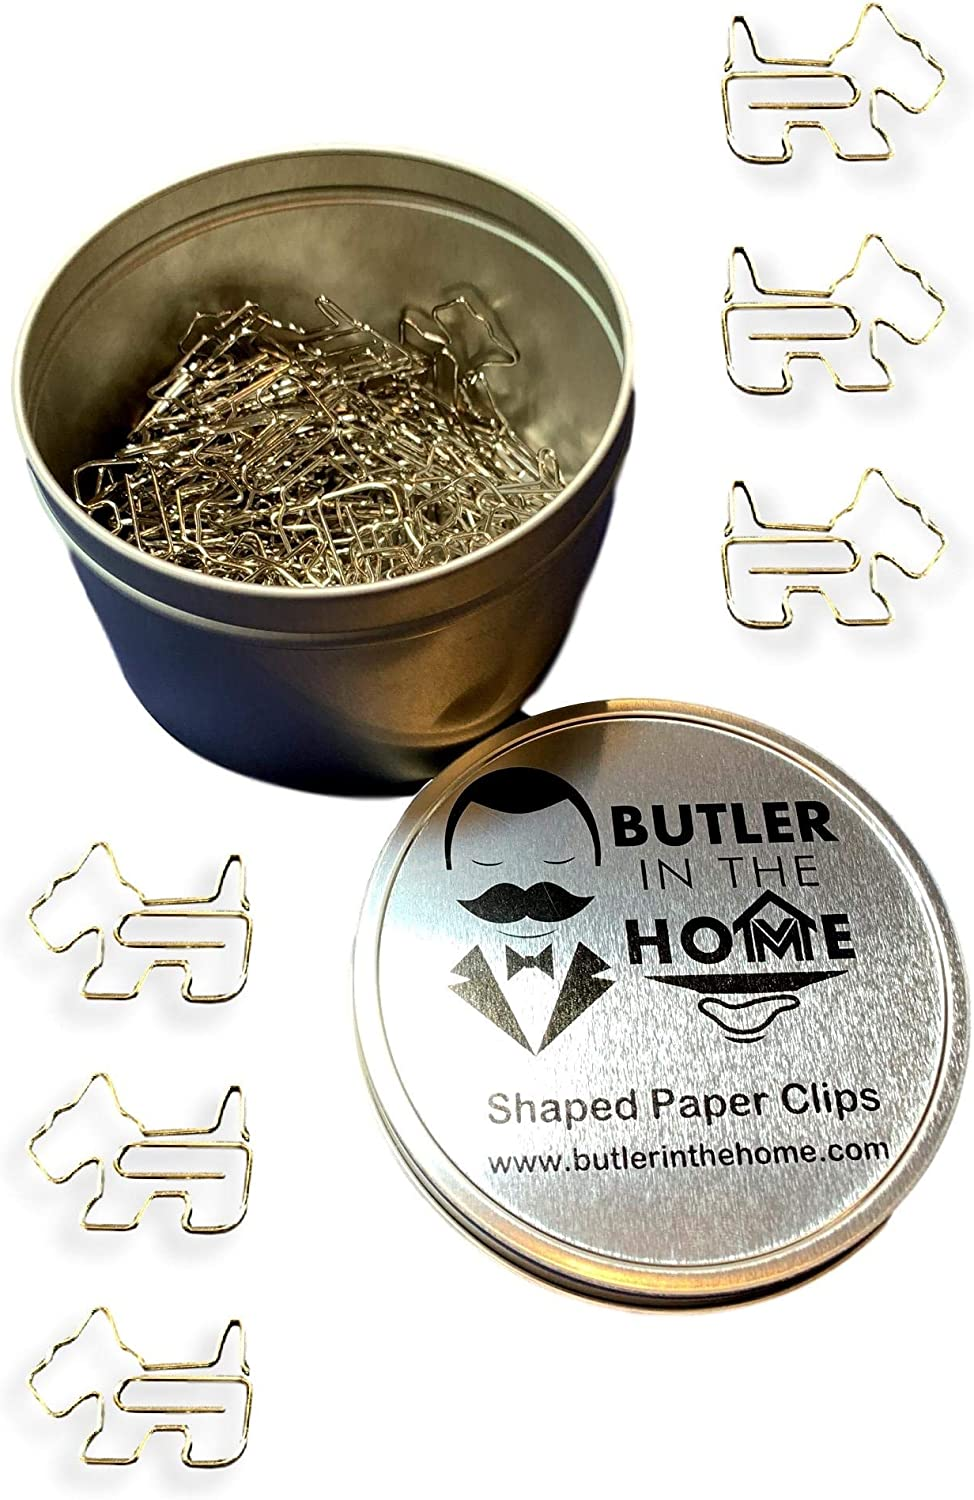 Butler in the Home 100 Count Schnauzer Shaped Paper Clips Great for Paper Clip Collectors or Office Gift - Comes in Round Tin with Lid and Gift Box (Silver)